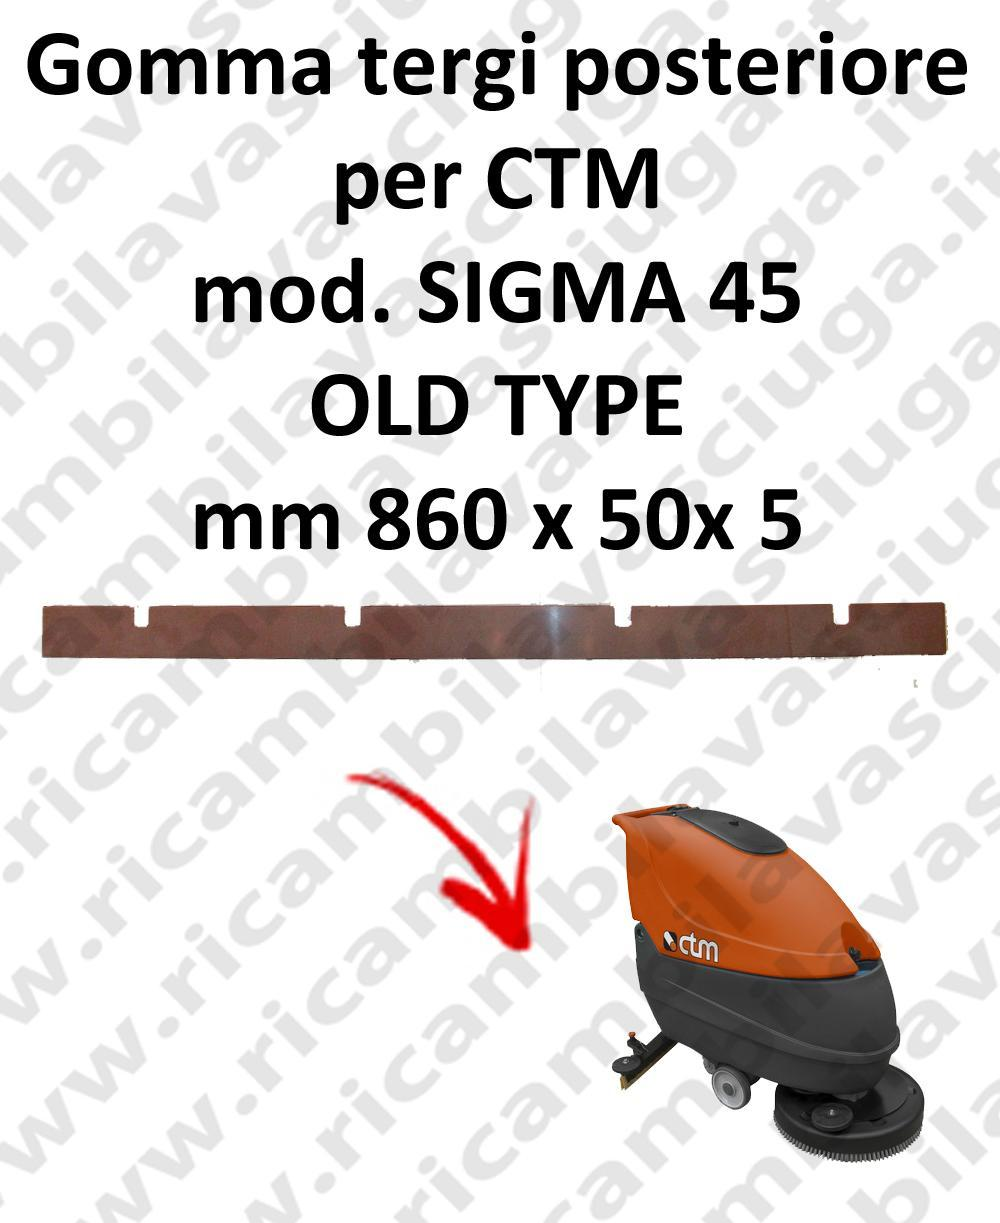 SIGMA 45 OLD TYPE BAVETTE ARRIERE pour CTM